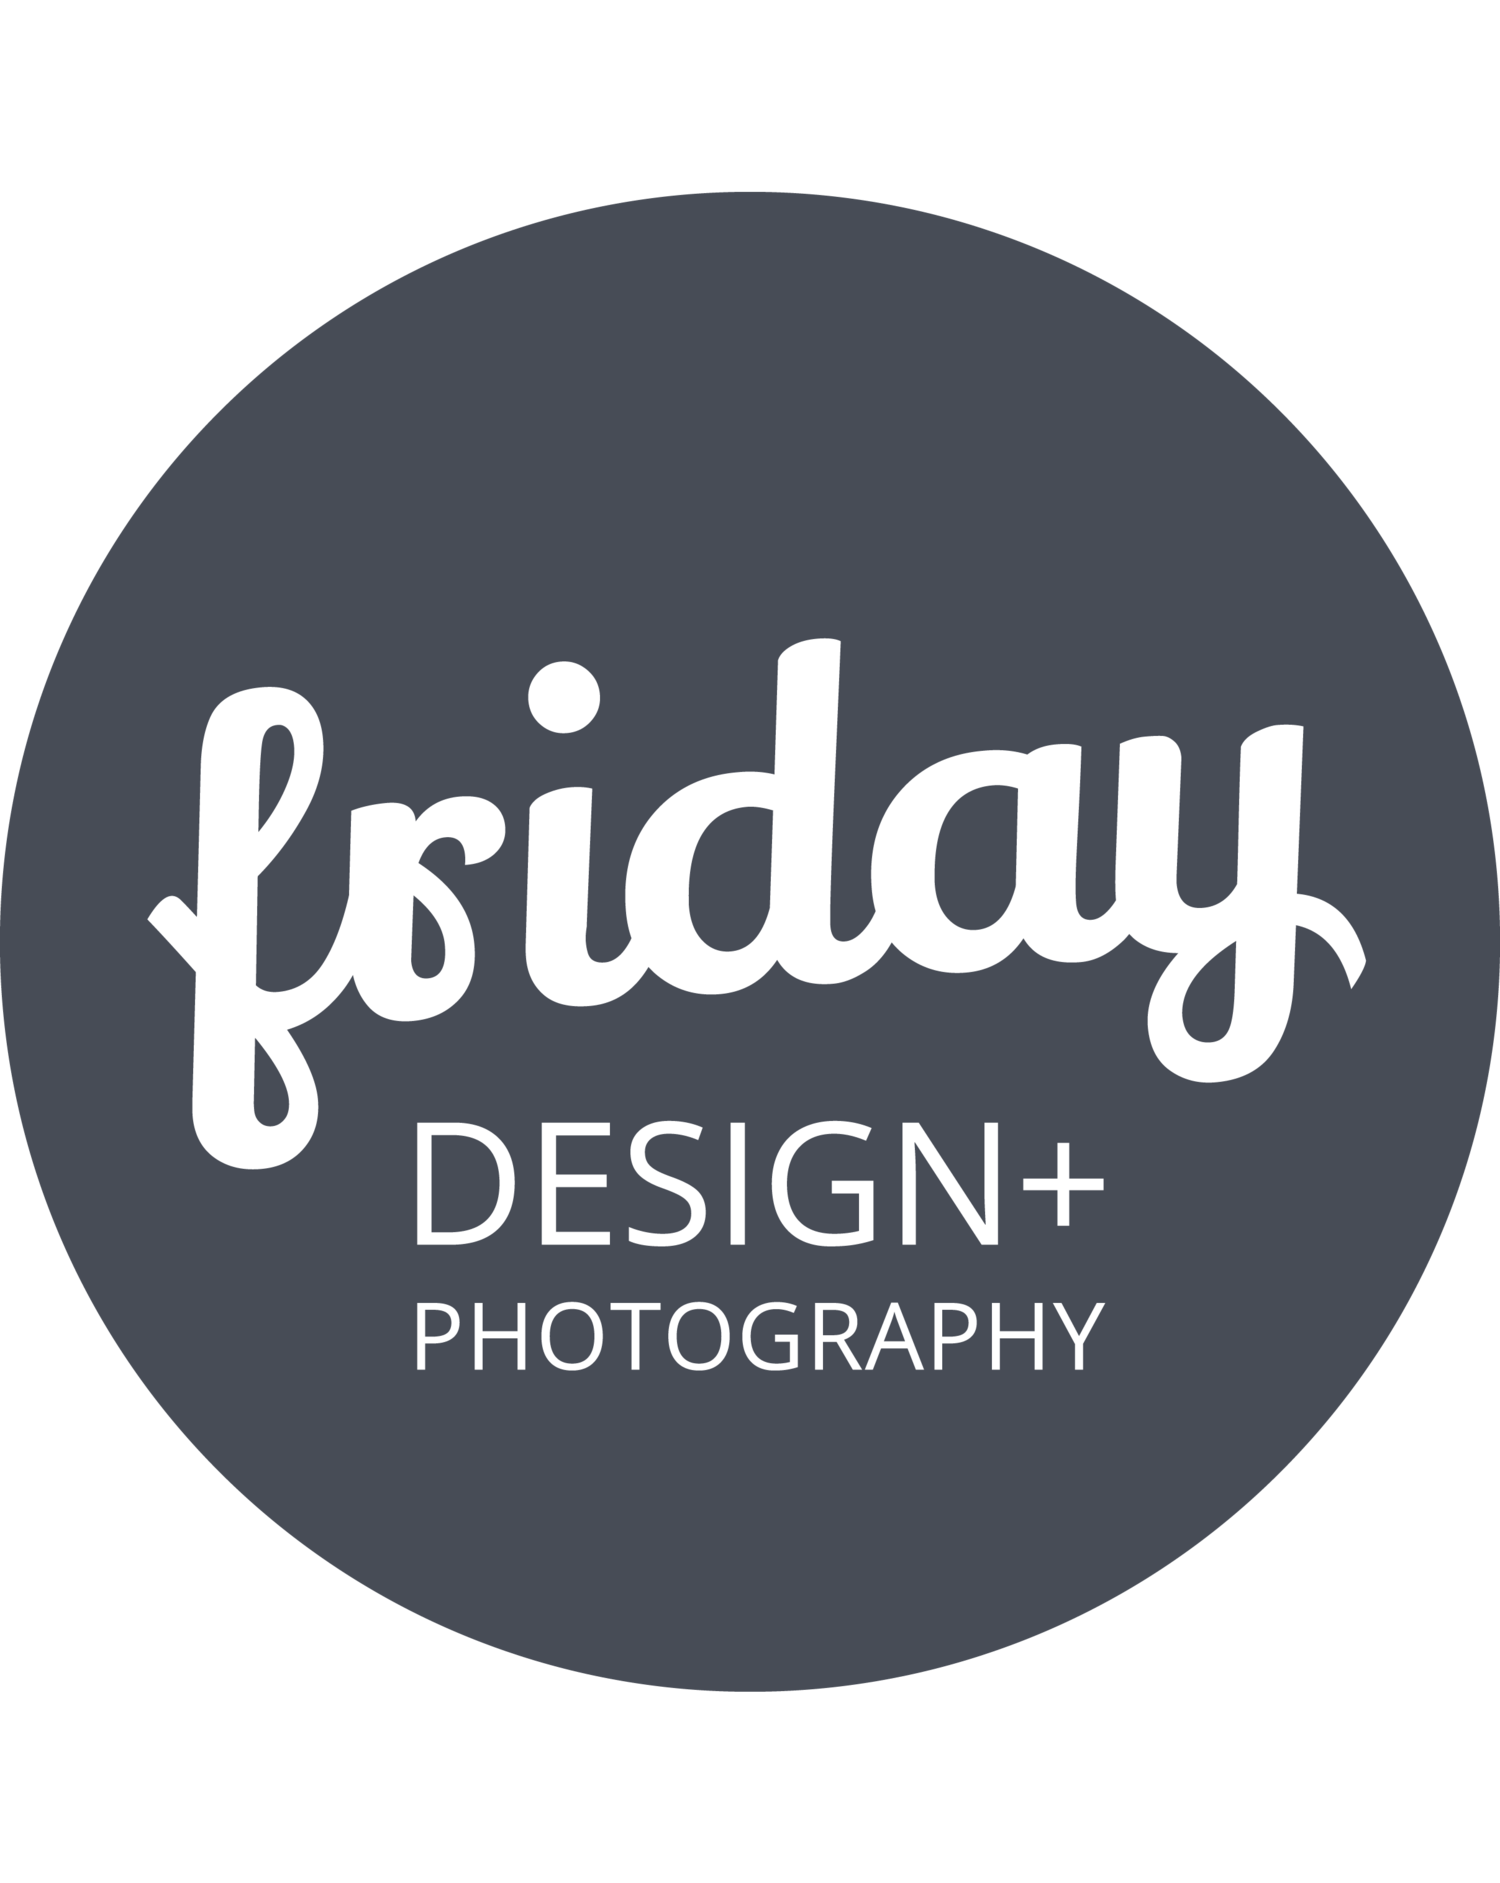 FRIDAY DESIGN + PHOTOGRAPHY